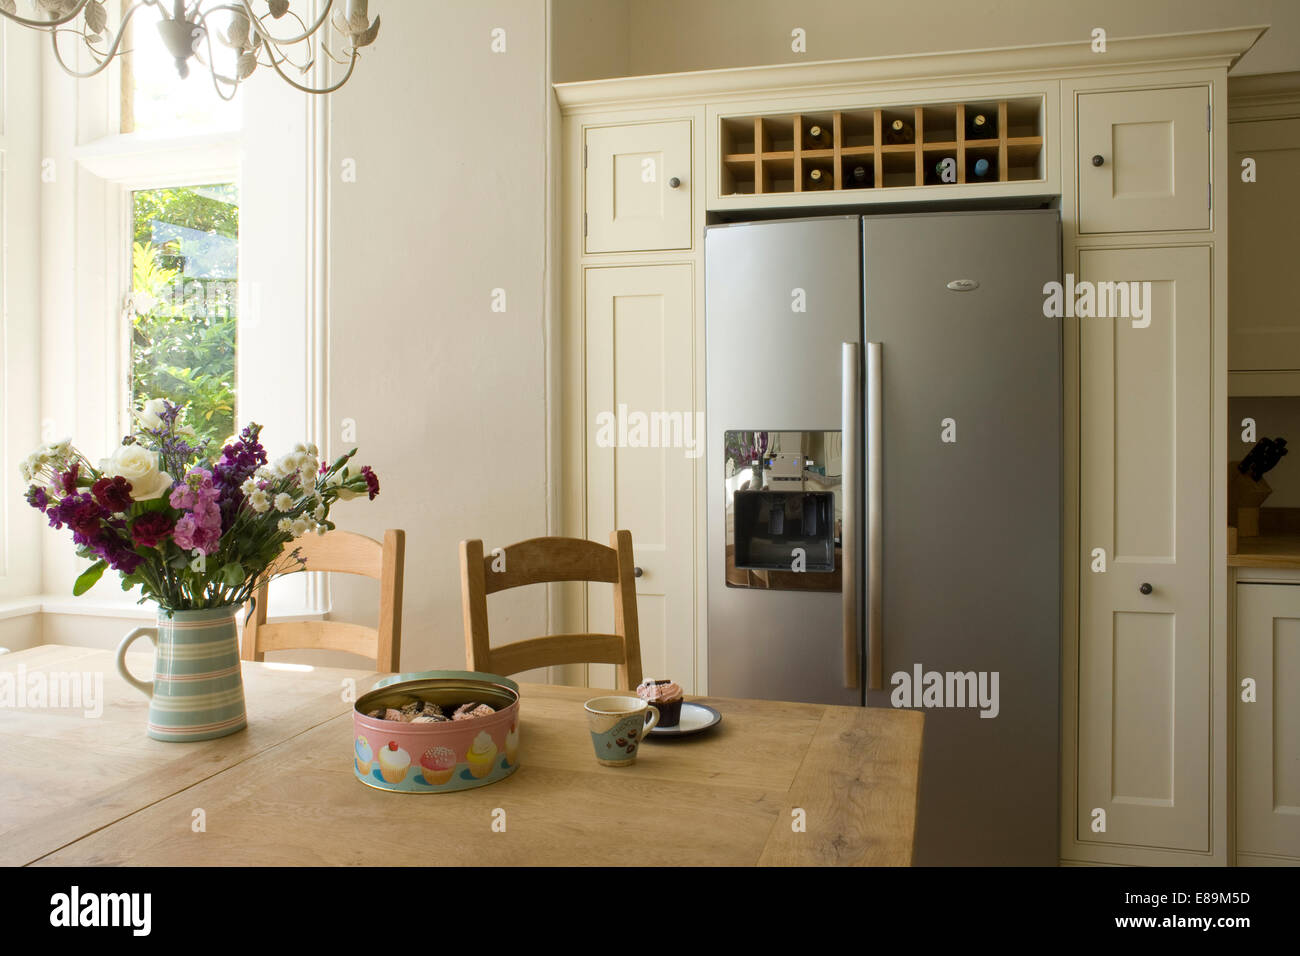 https www alamy com stock photo vase of summer flowers on table in country kitchen with wine storage 73972121 html